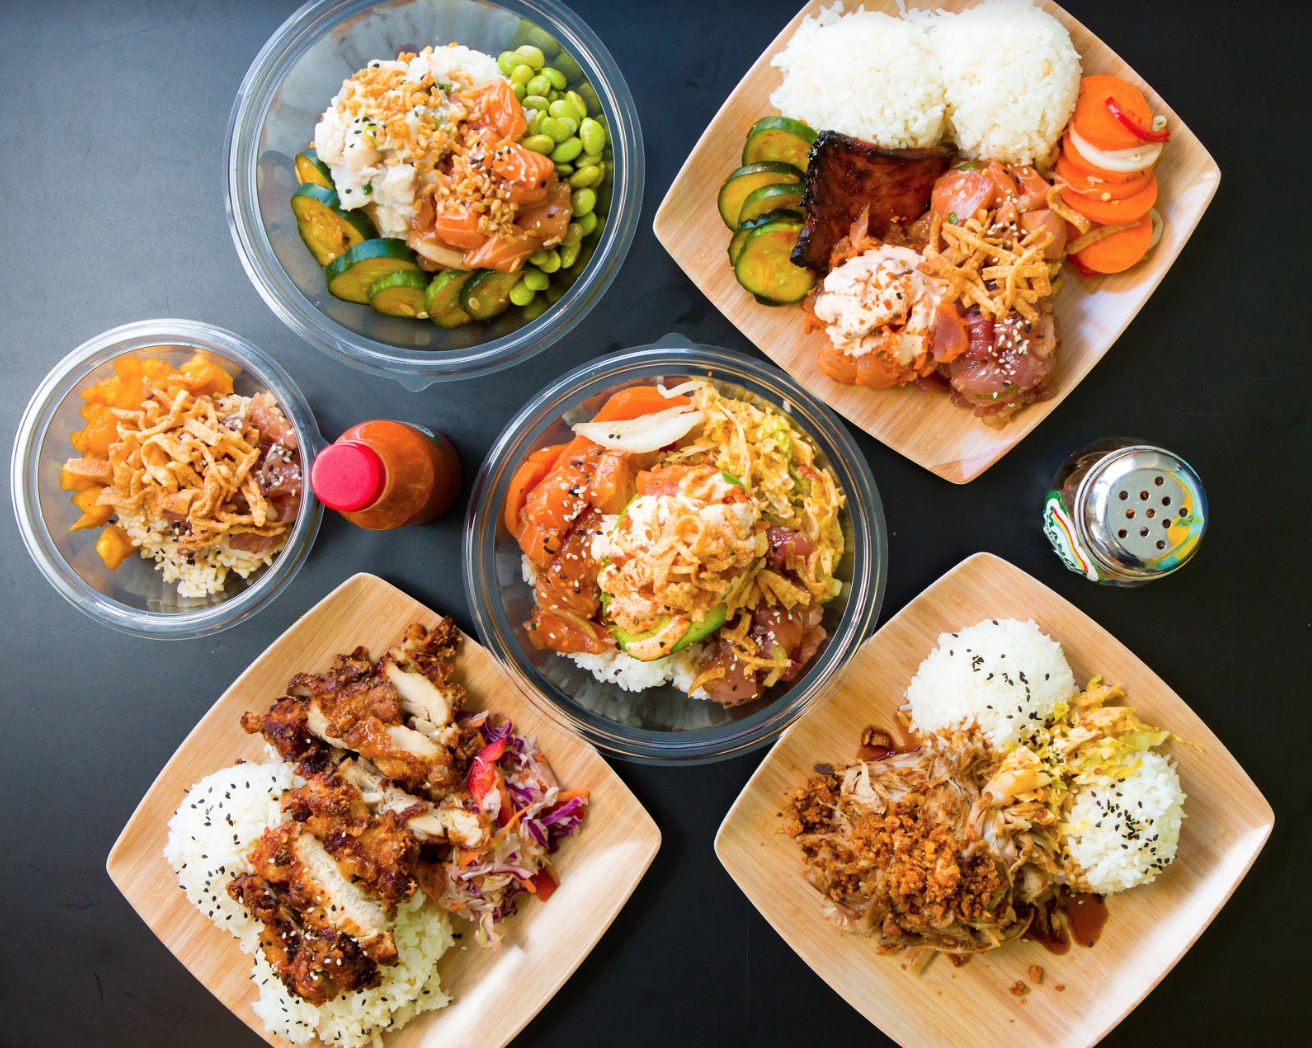 Overhead view of multiple restaurant dishes, including poke, on a dark table